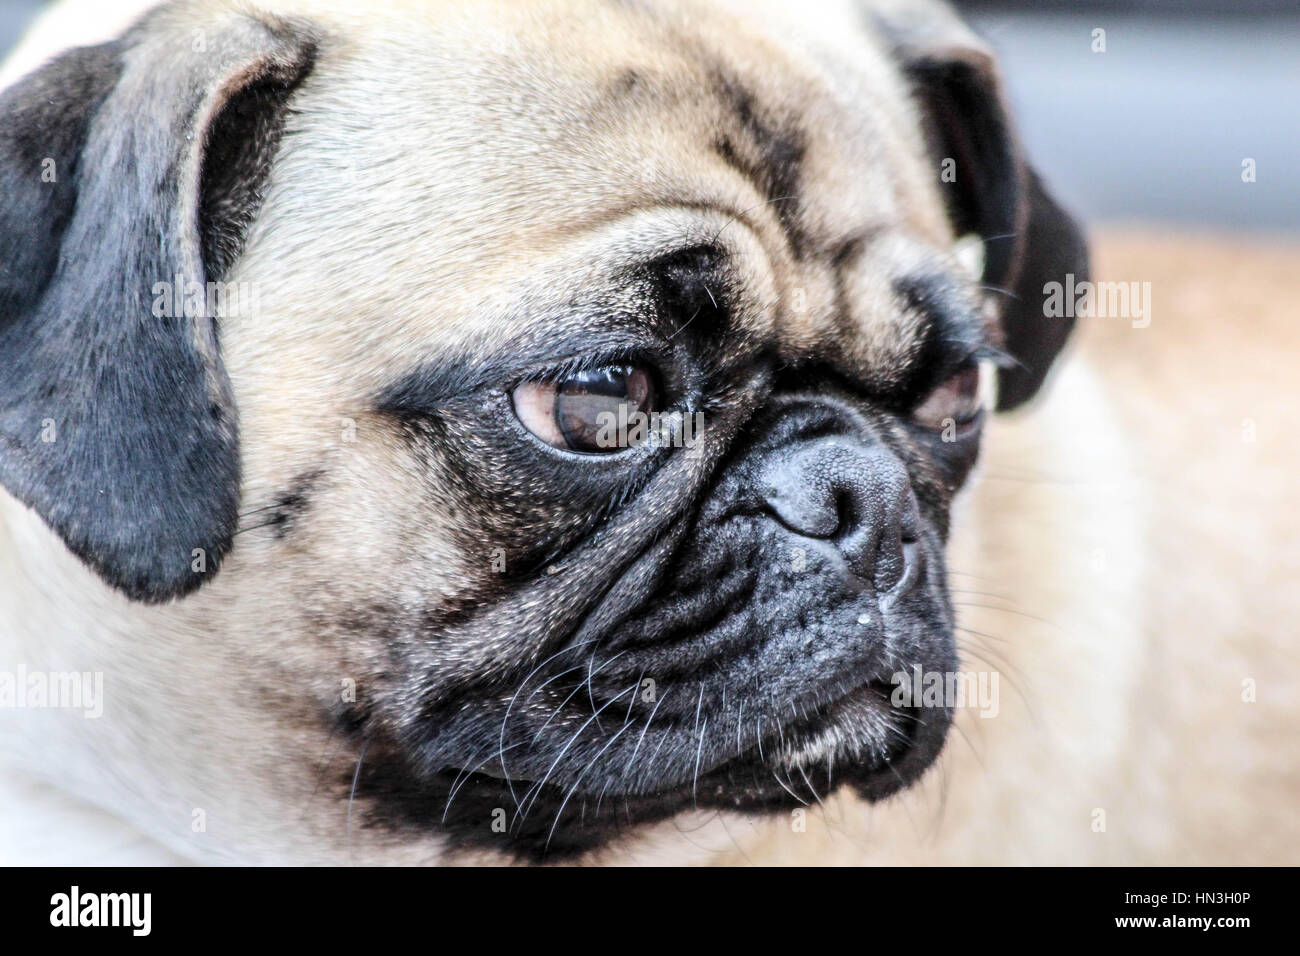 Super cute pug dog giving her best smile for the camera - Stock Image